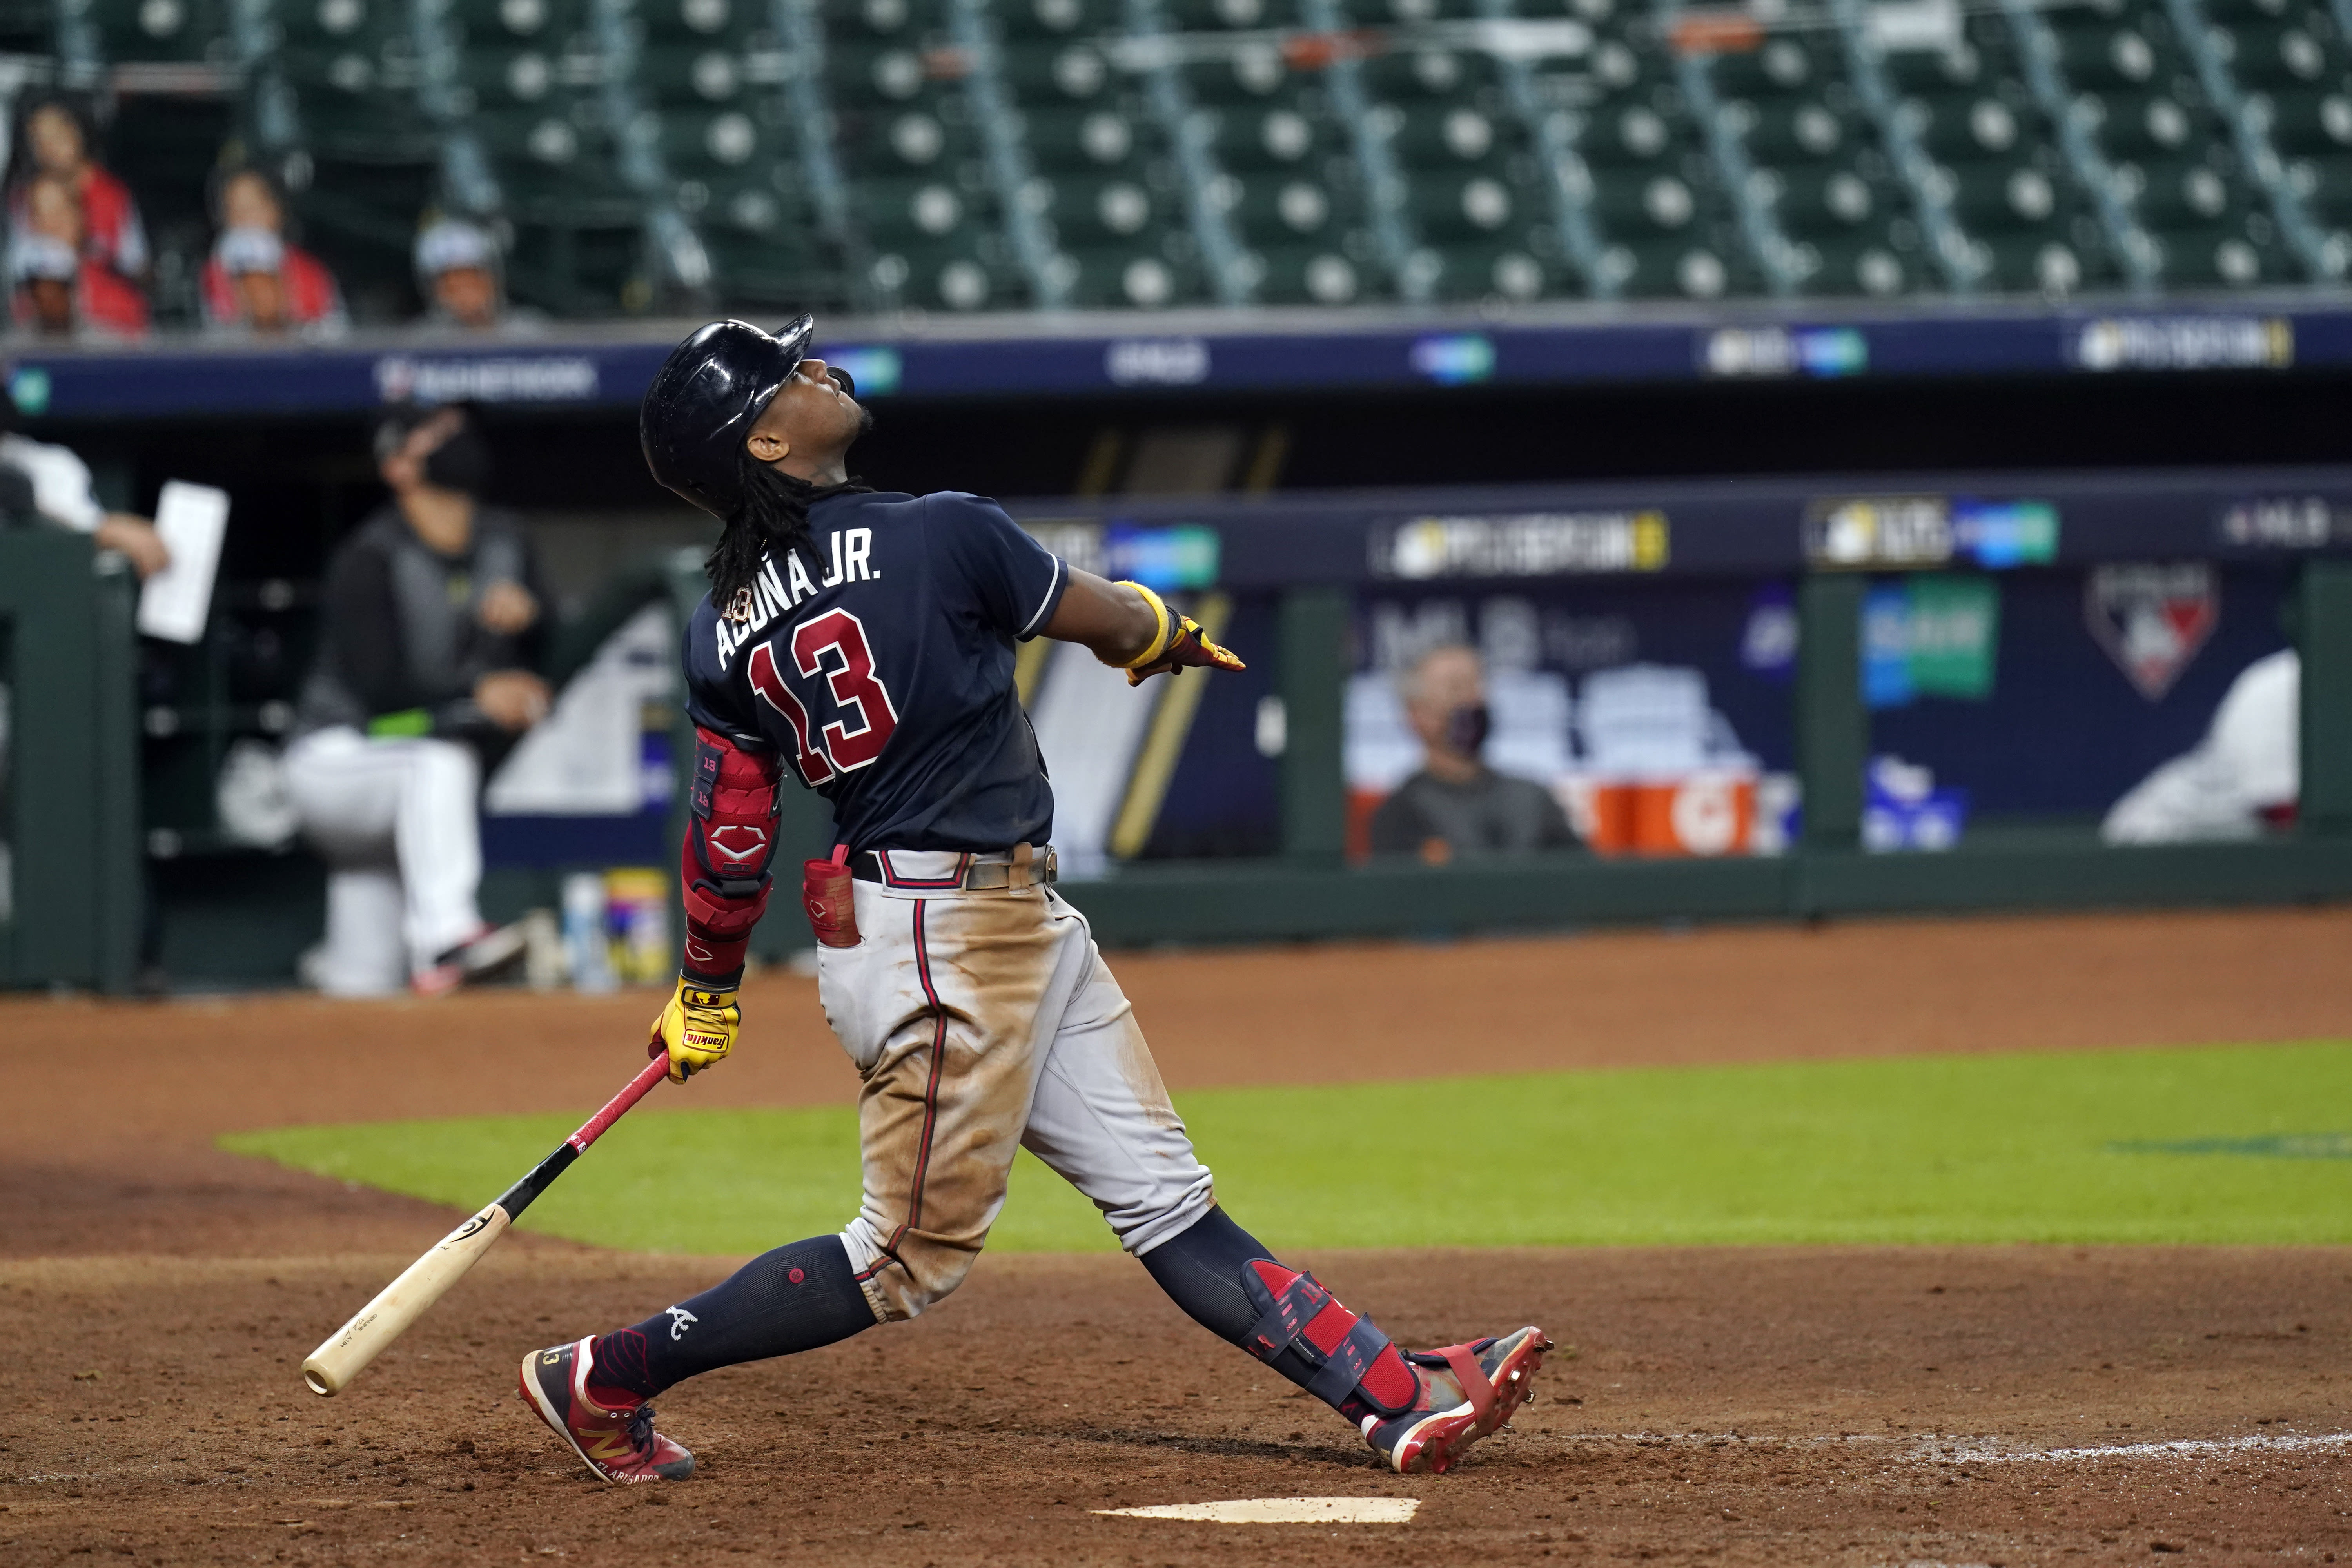 Atlanta Braves' Ronald Acuna Jr. flies out in the eighth inning against the Miami Marlins in Game 3 of a baseball National League Division Series, Thursday, Oct. 8, 2020, in Houston. (AP Photo/Eric Gay)